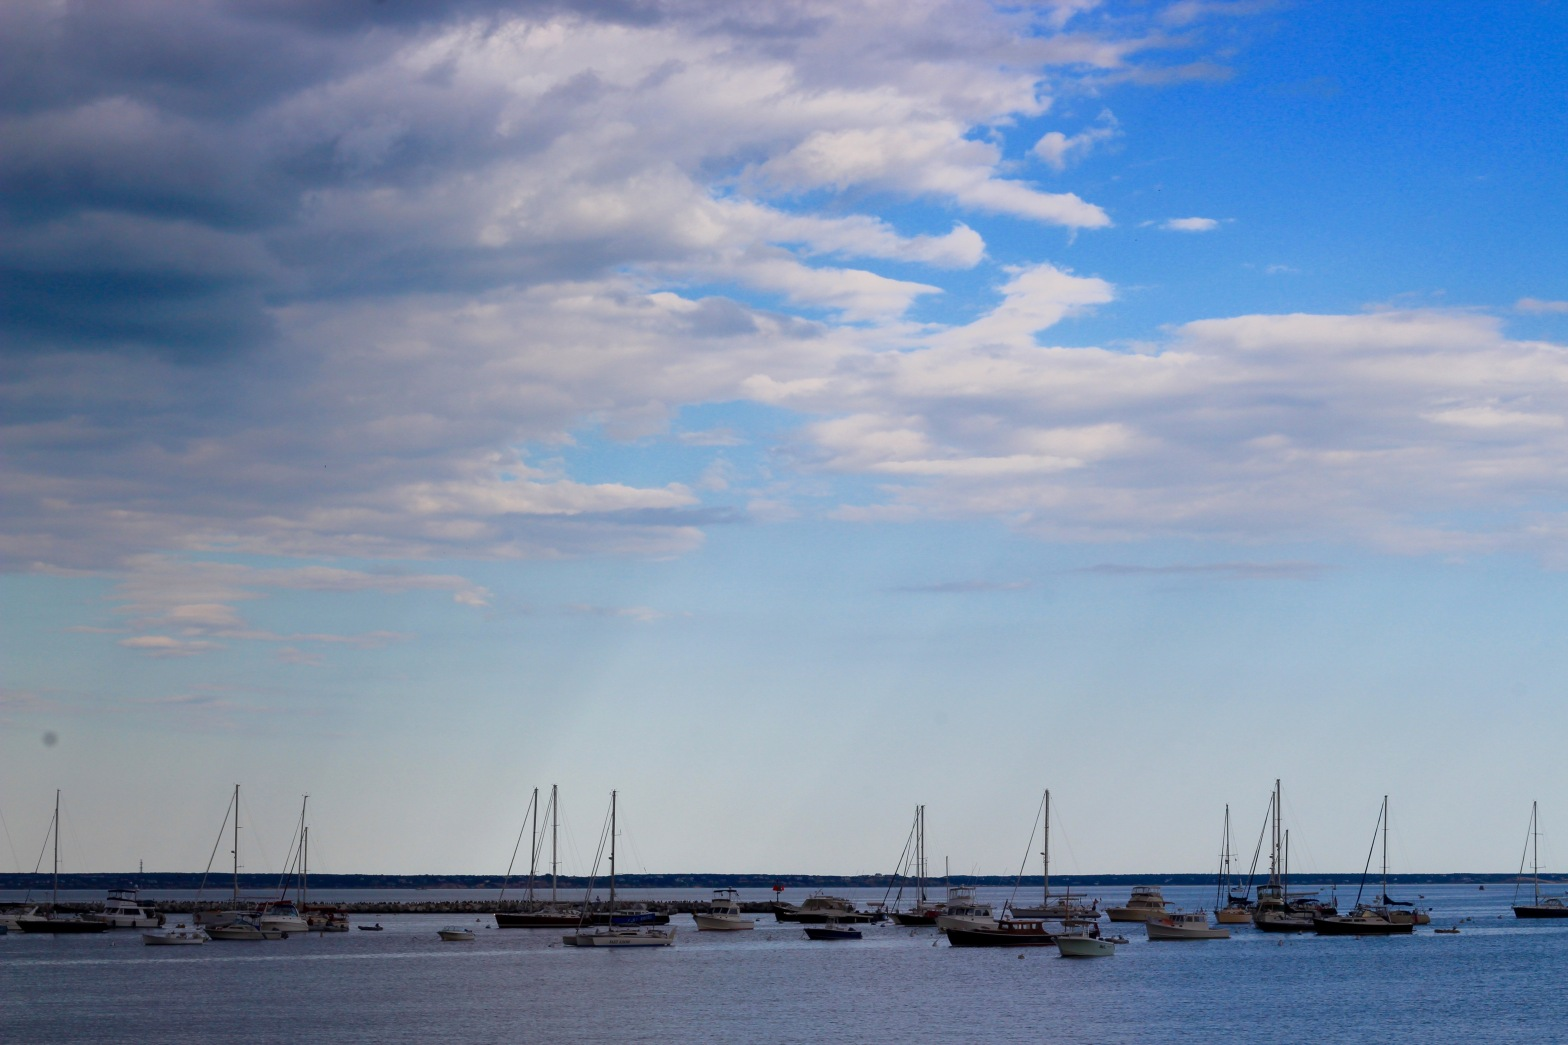 boats on the ocean with pretty sky